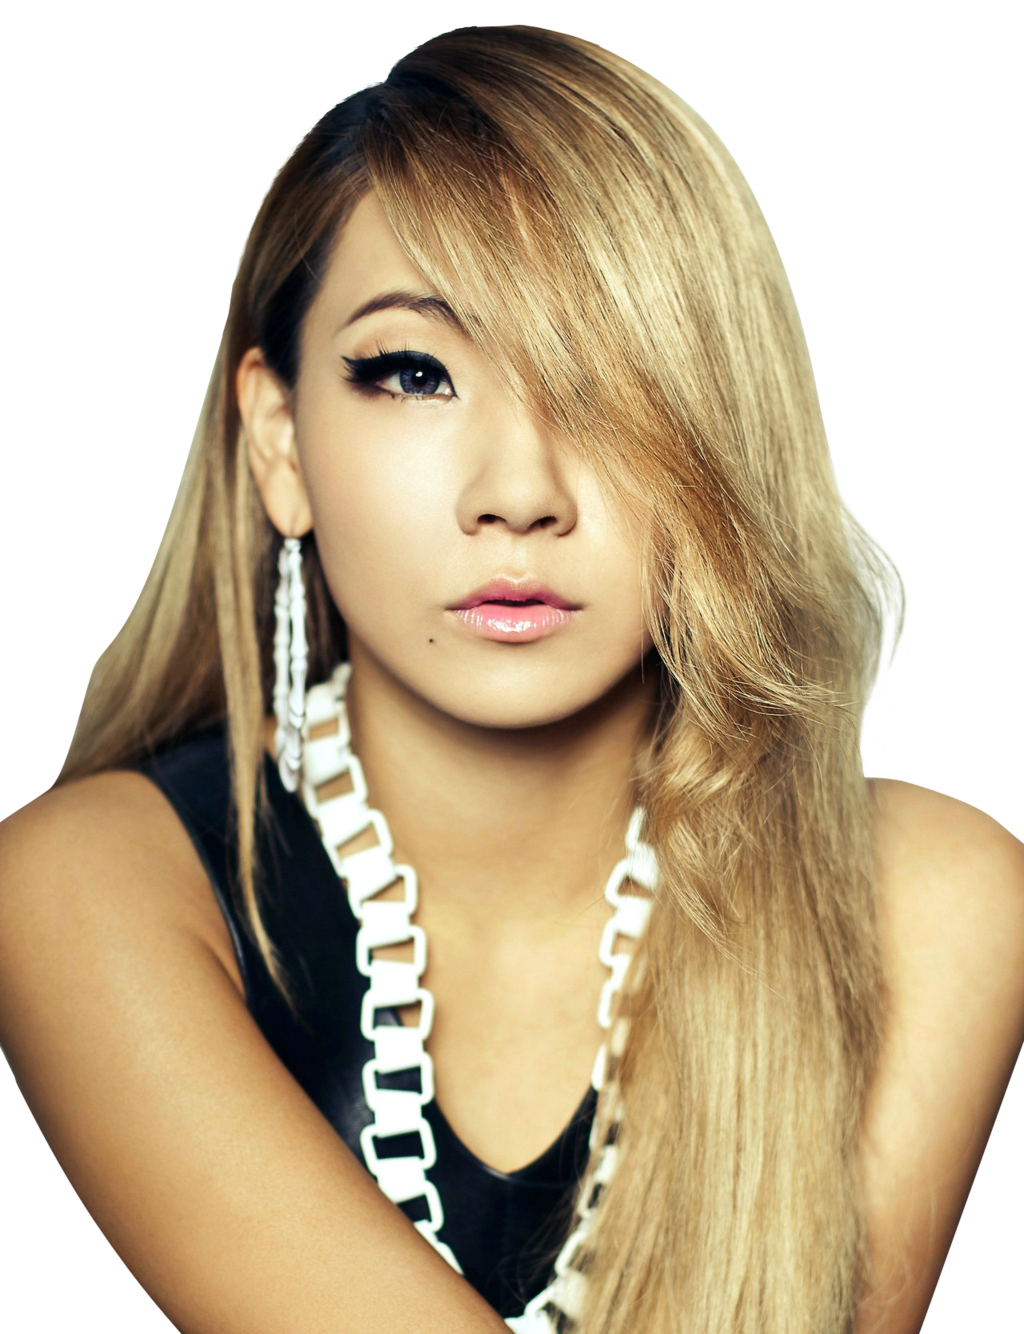 2ne1 Images Cl 2ne1 Kpop Hd Wallpaper And Background Photos 37205112